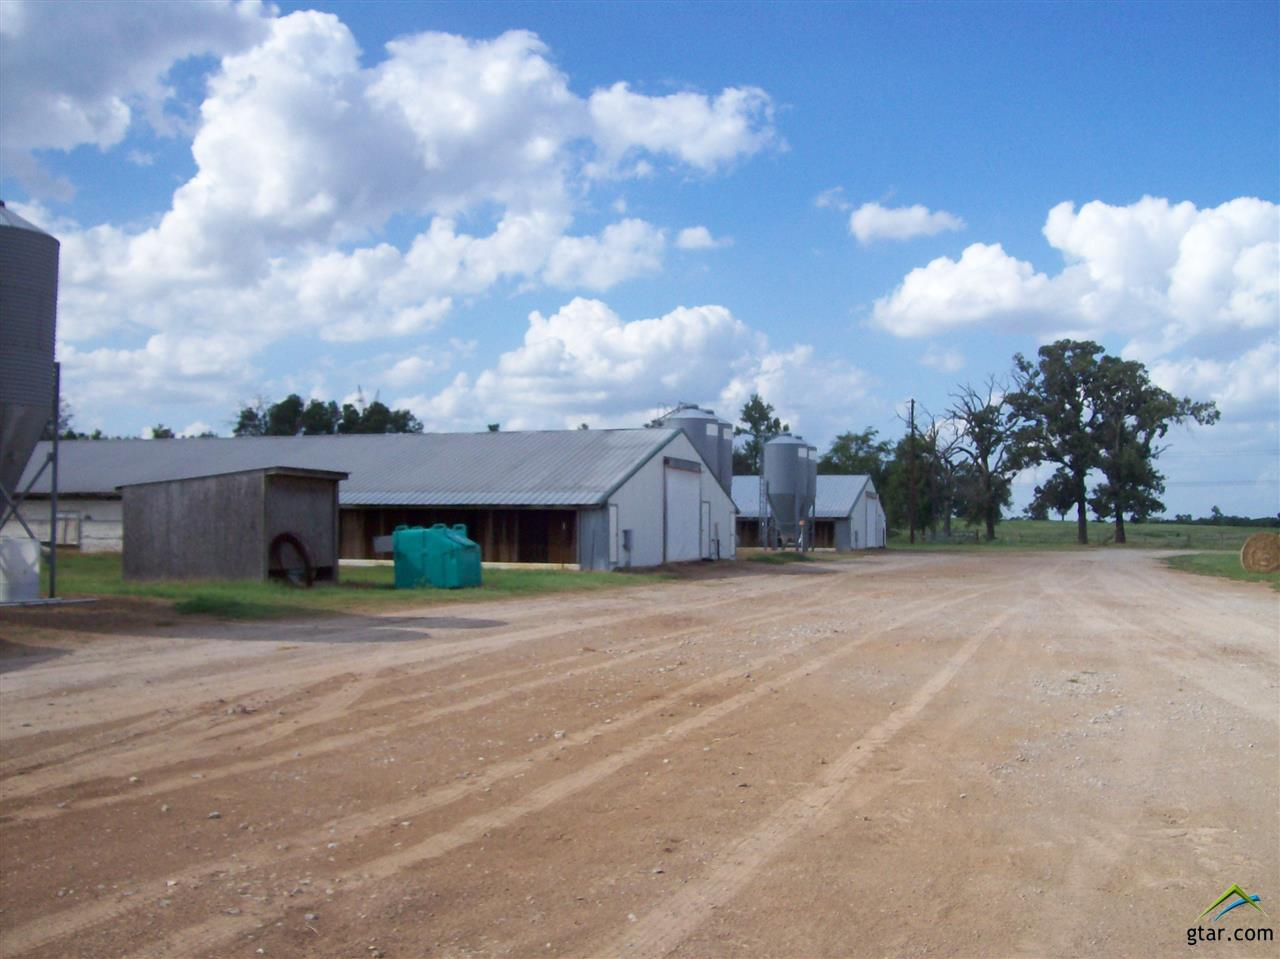 POULTRY FARM FOR SALE  4 40X300 POULTRY HOUSES BUILT IN 1989 AND IN GOOD OPERATING CONDITION ON 11.738 ACRES.  CHORE TIME EQUIPMENT AND PLYTHON WATER SYSTEM.  1 WELL AND COMMUNITY WATER.  CALL FOR APPOINTMENT TO SEE.